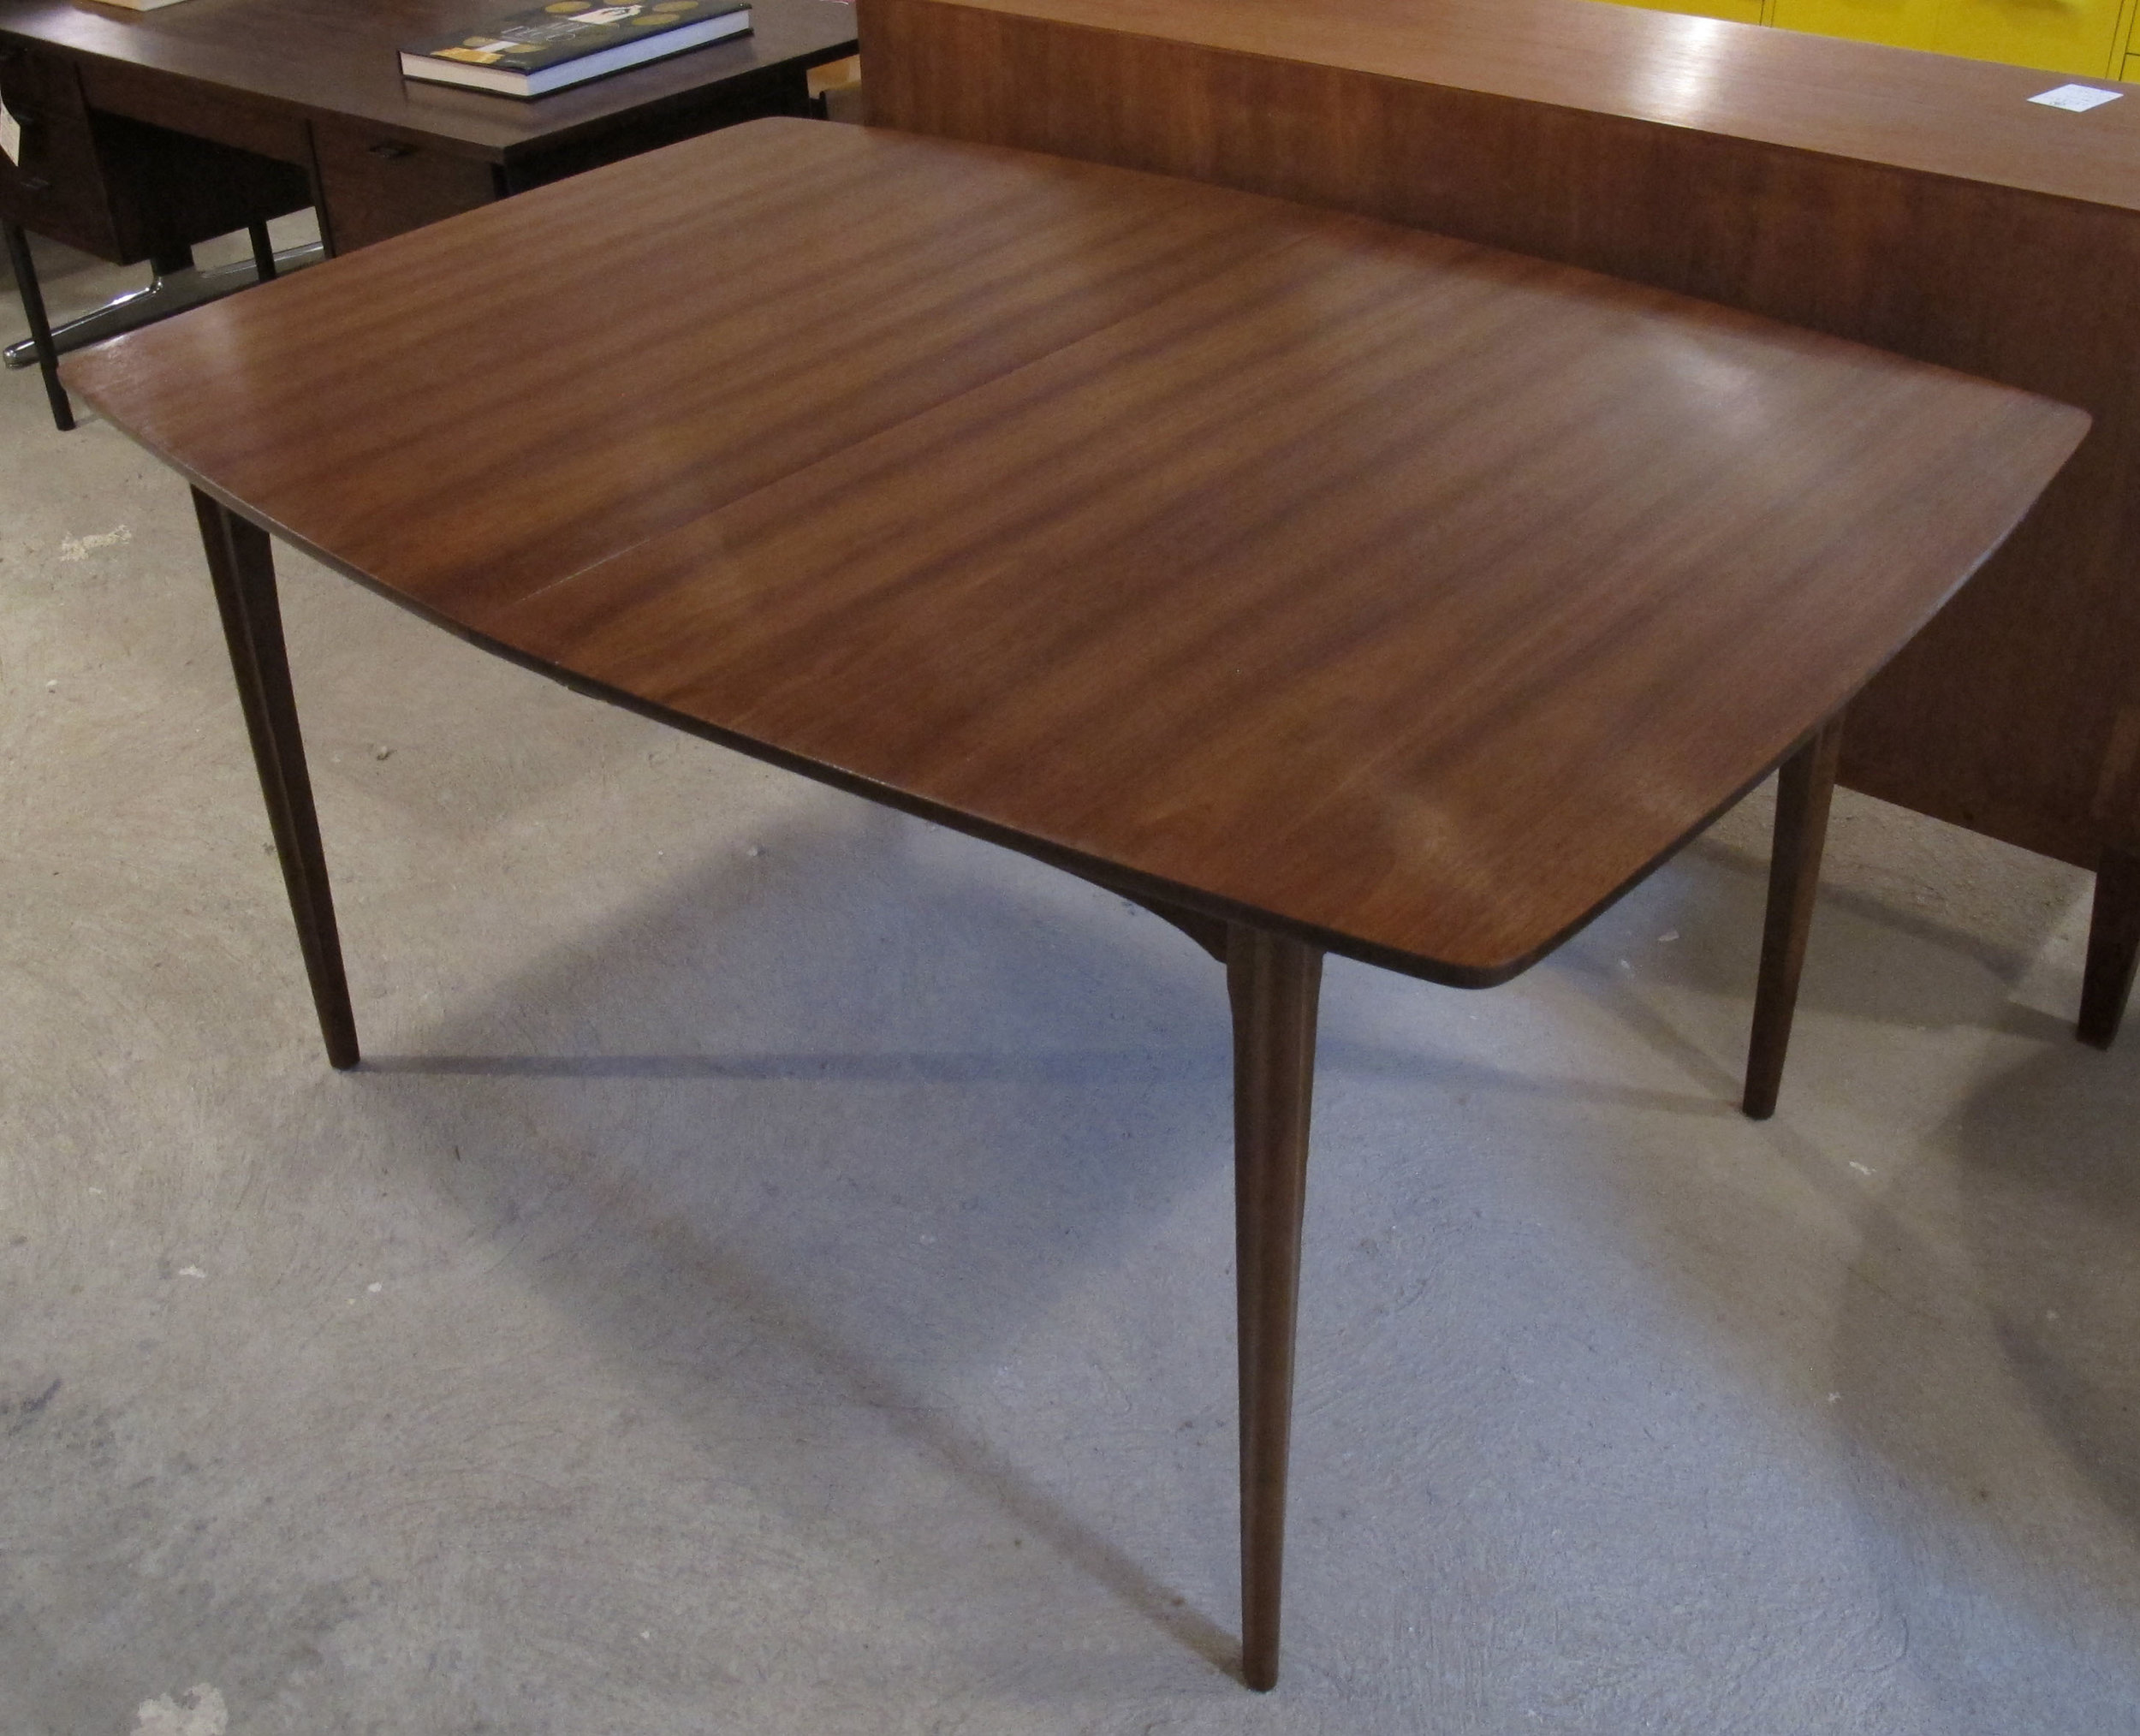 MID CENTURY WALNUT DINING TABLE BY KENT COFFEY